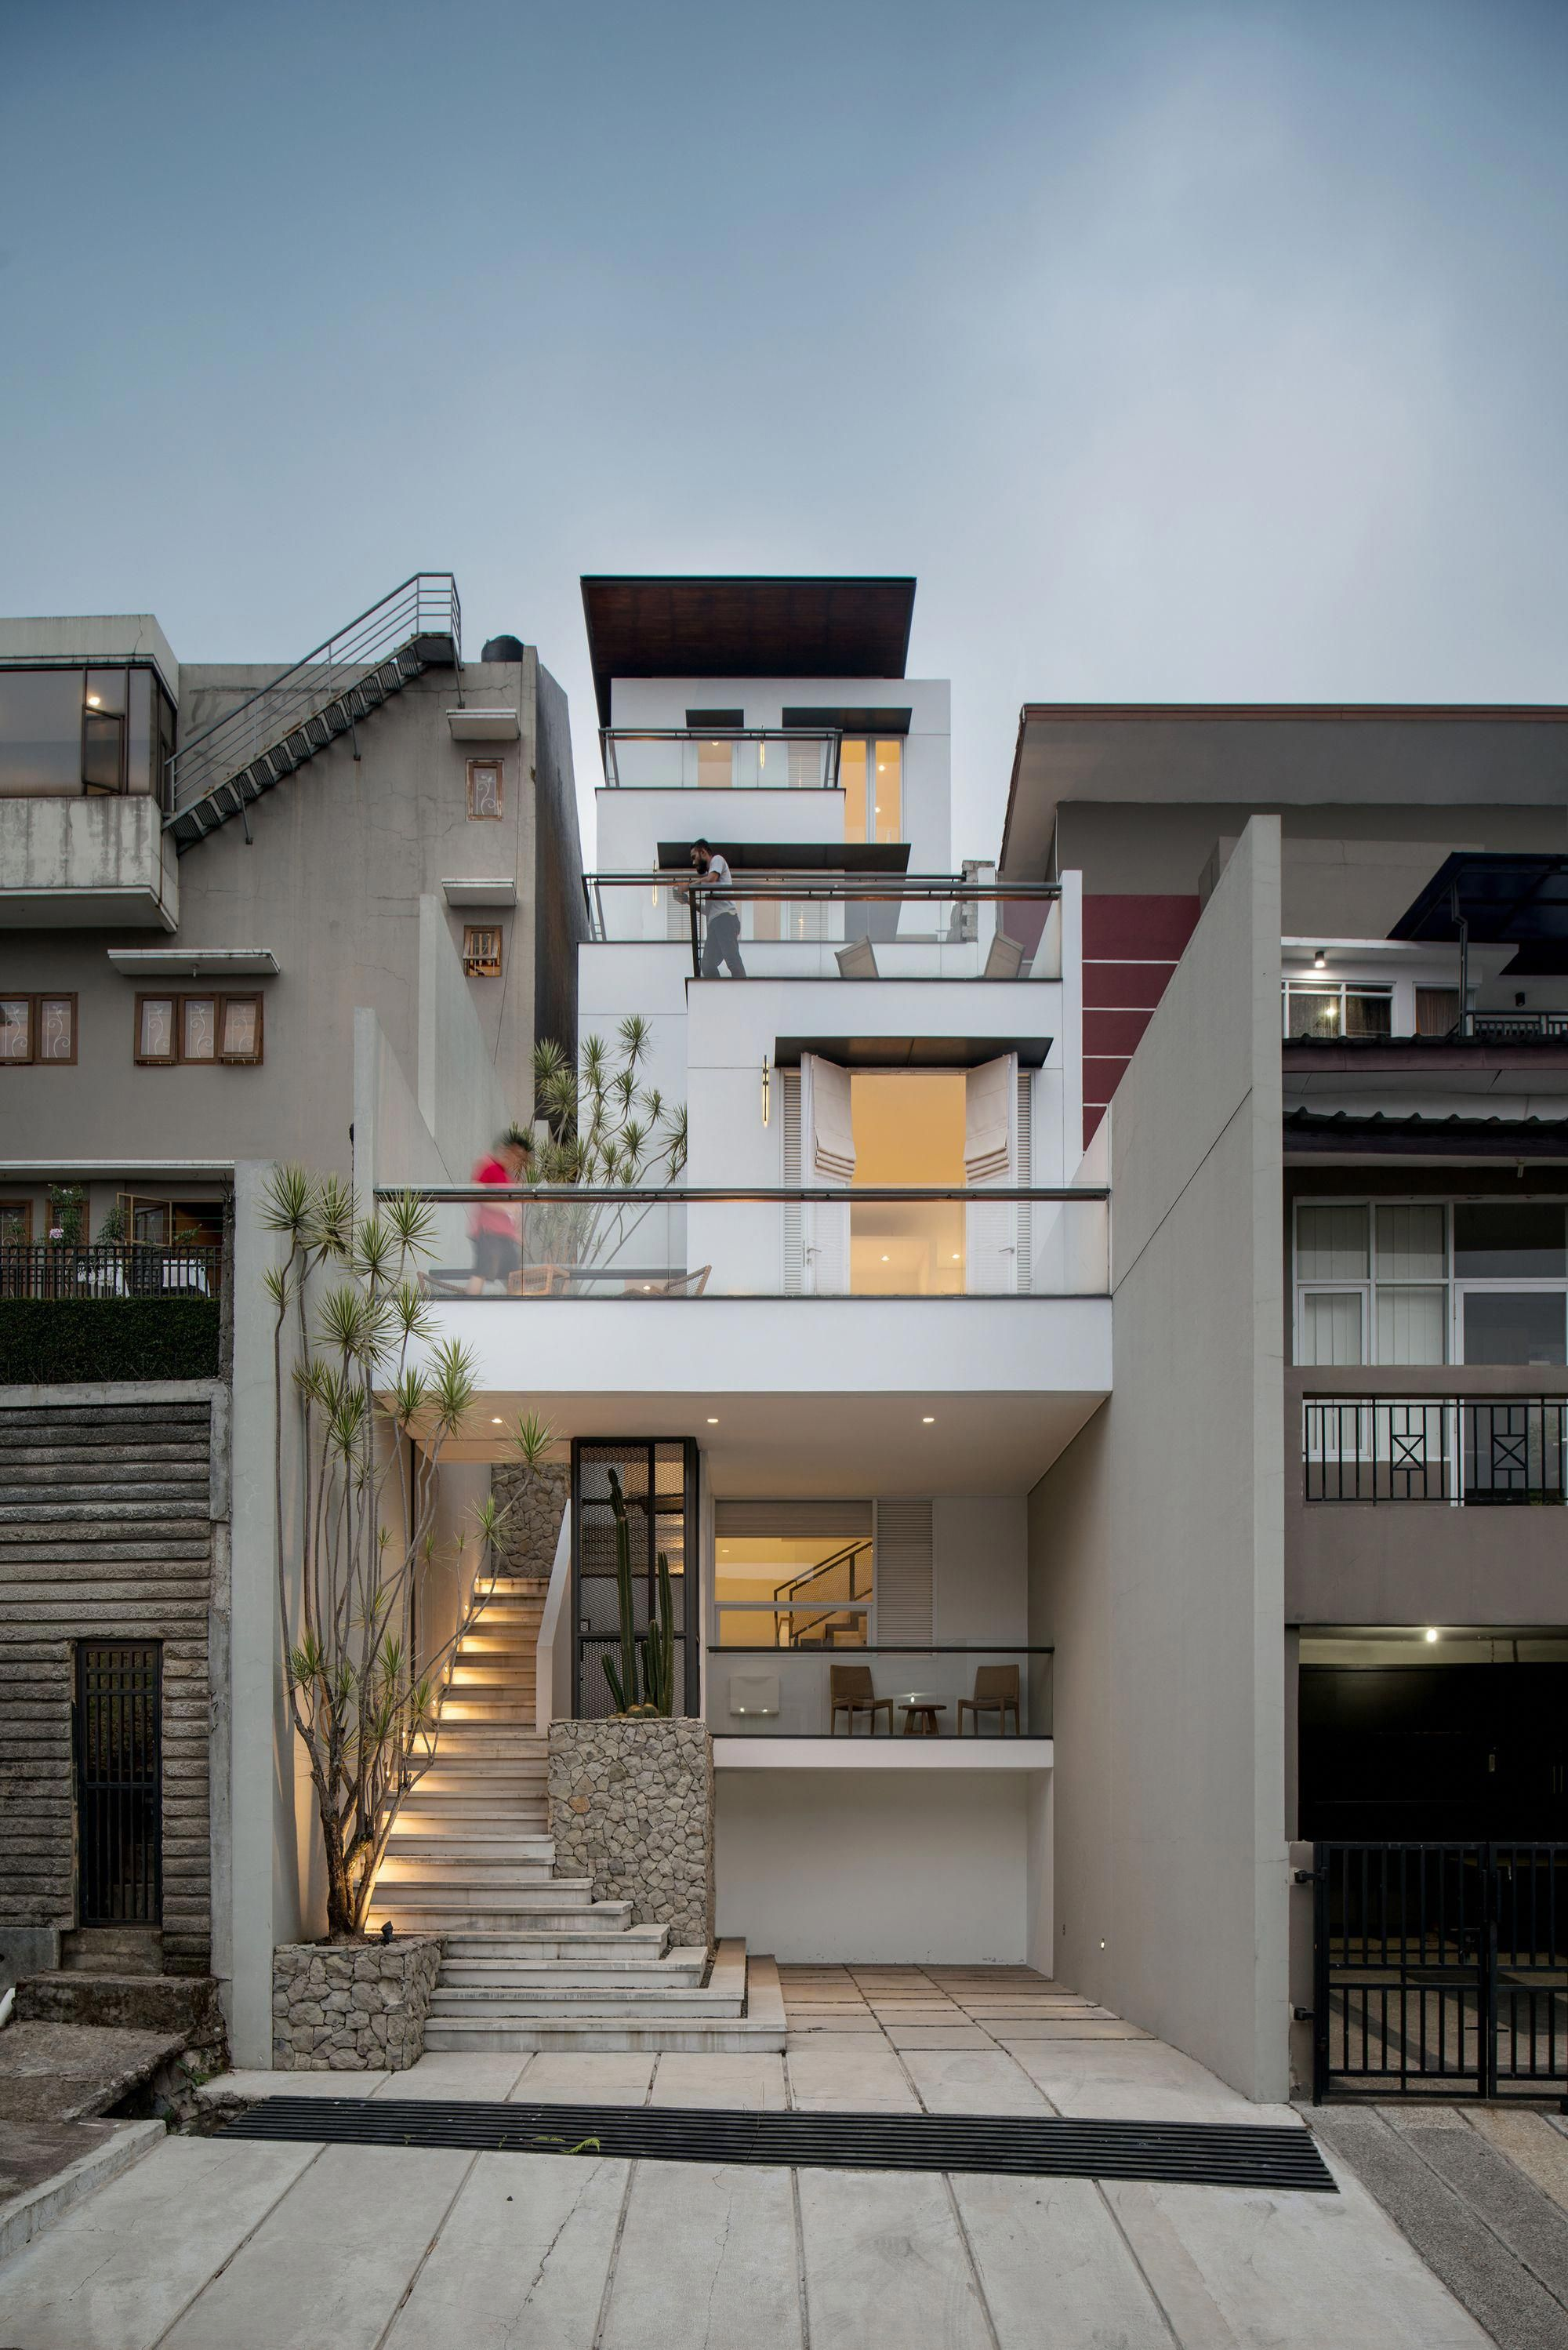 Completed In 2017 In Cidadap Indonesia Images By Nilaiasia On A Sloppy Narrow Land Measuring Modern Architecture House House Front Design Architecture House